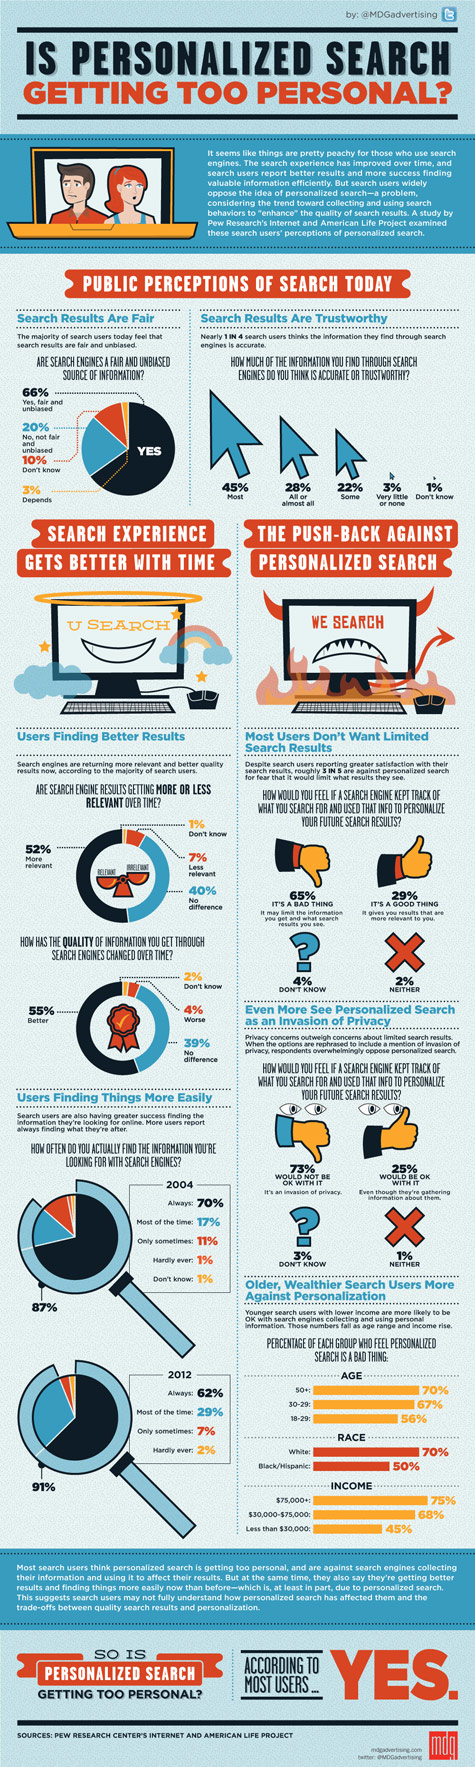 is personalized search getting too personal infographic 475